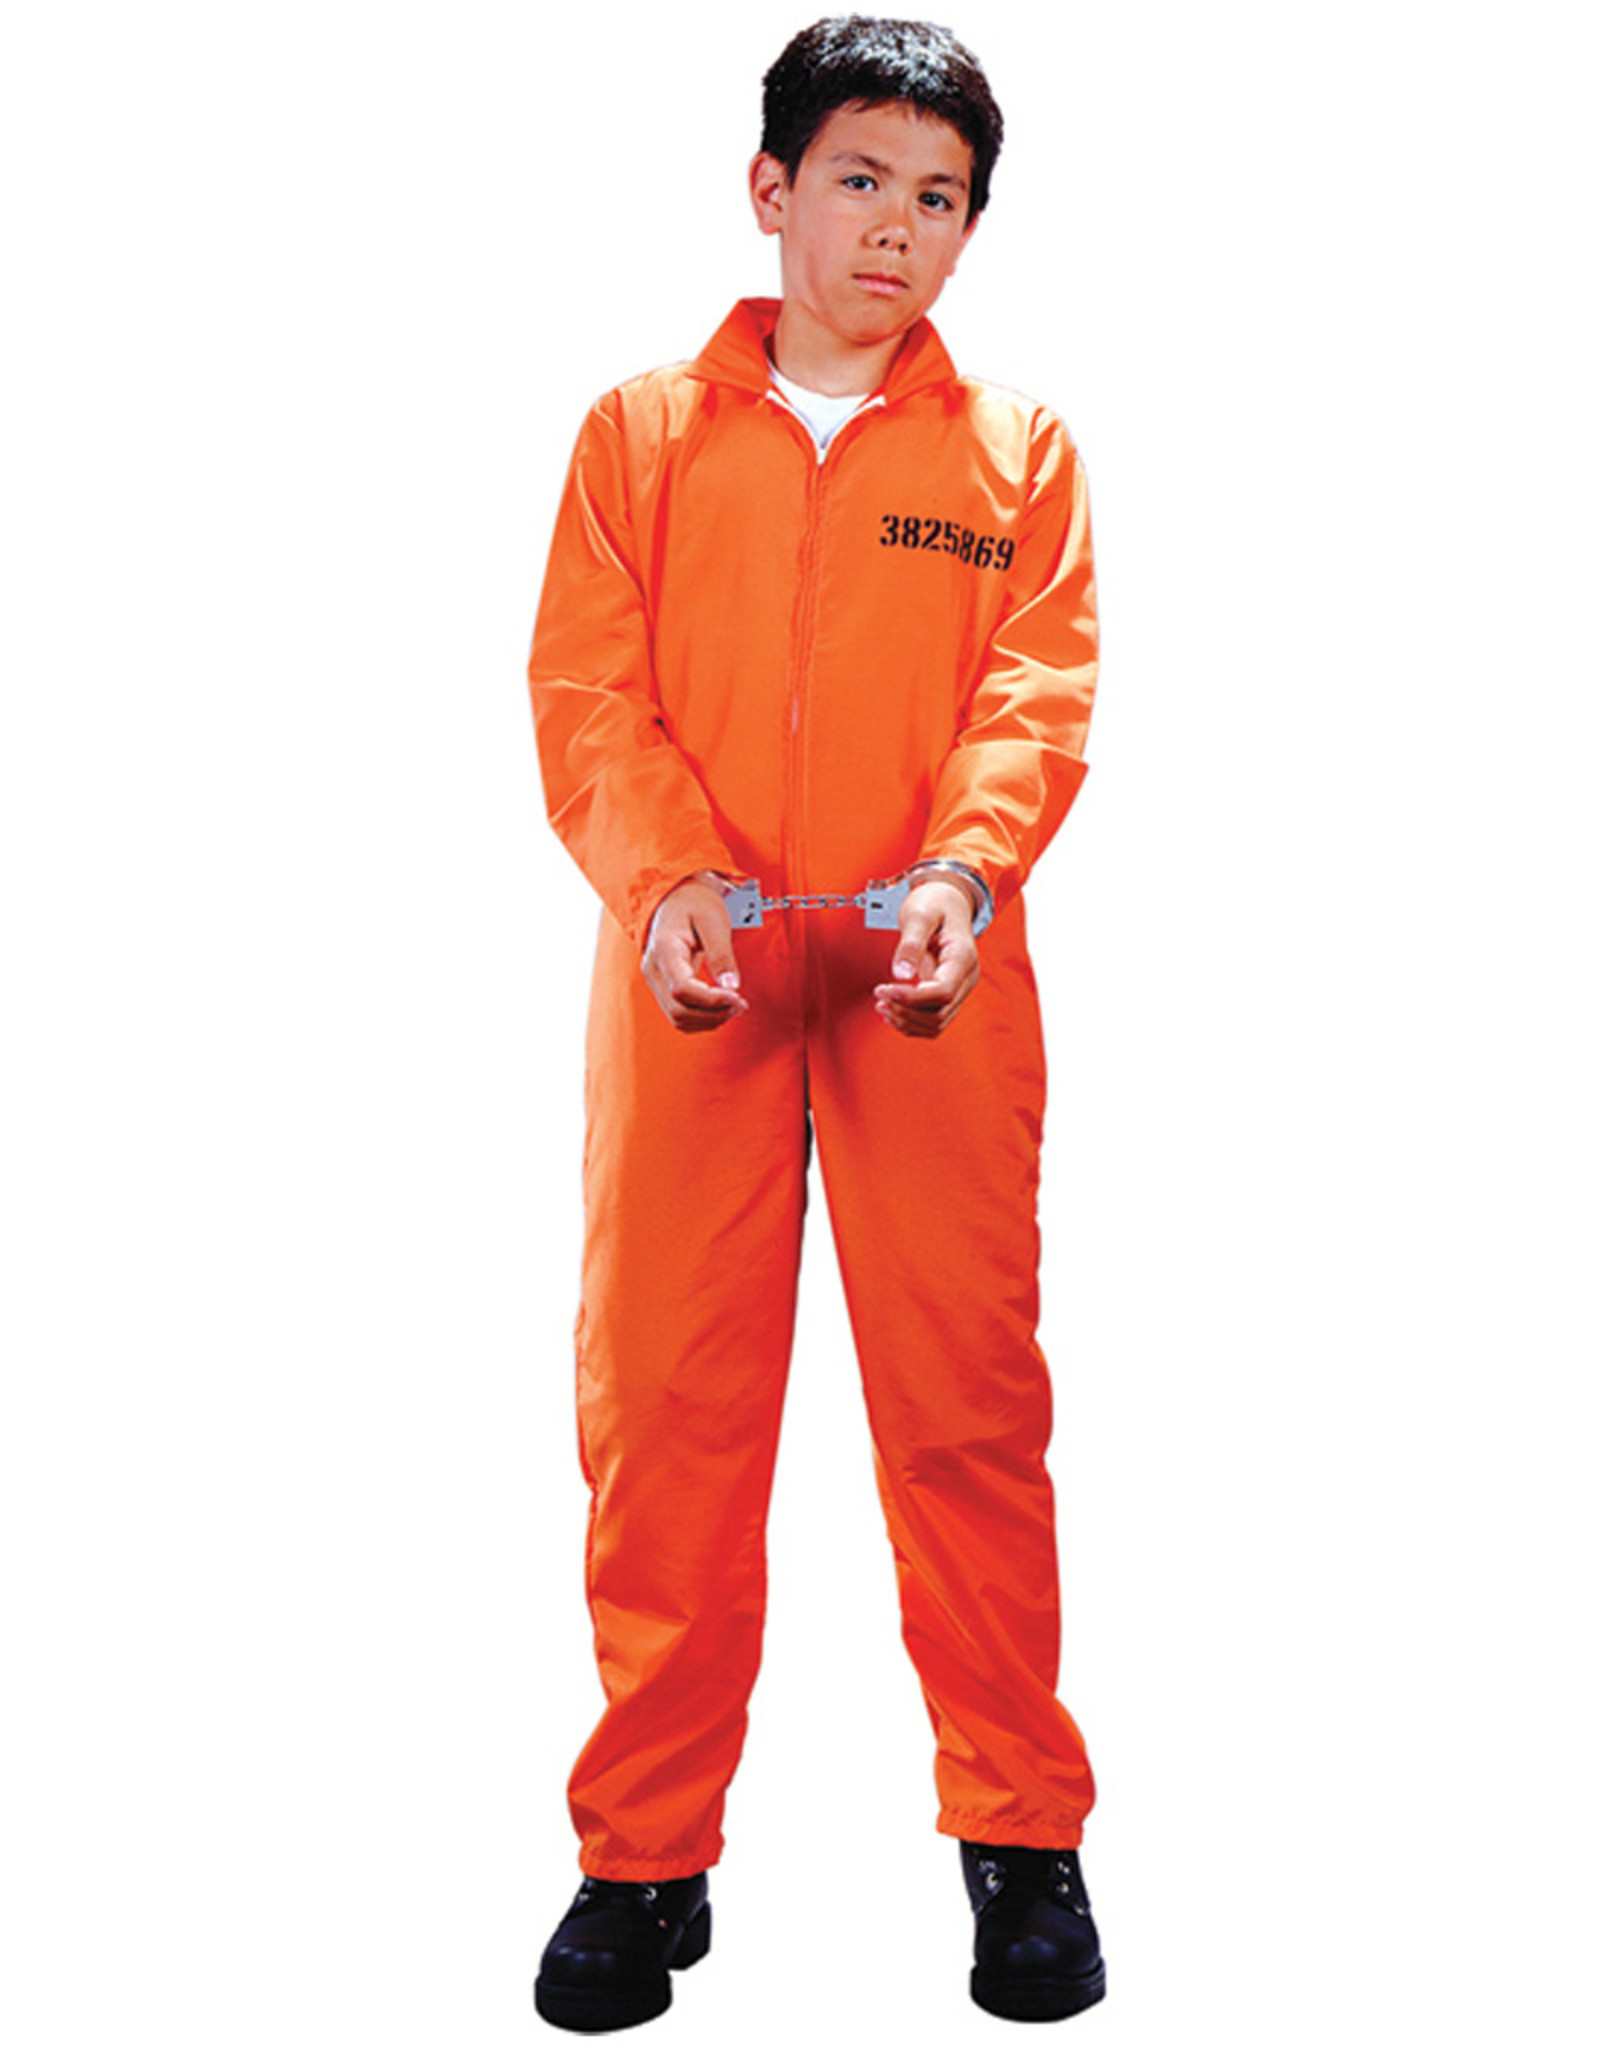 Got Busted Costume - Boys